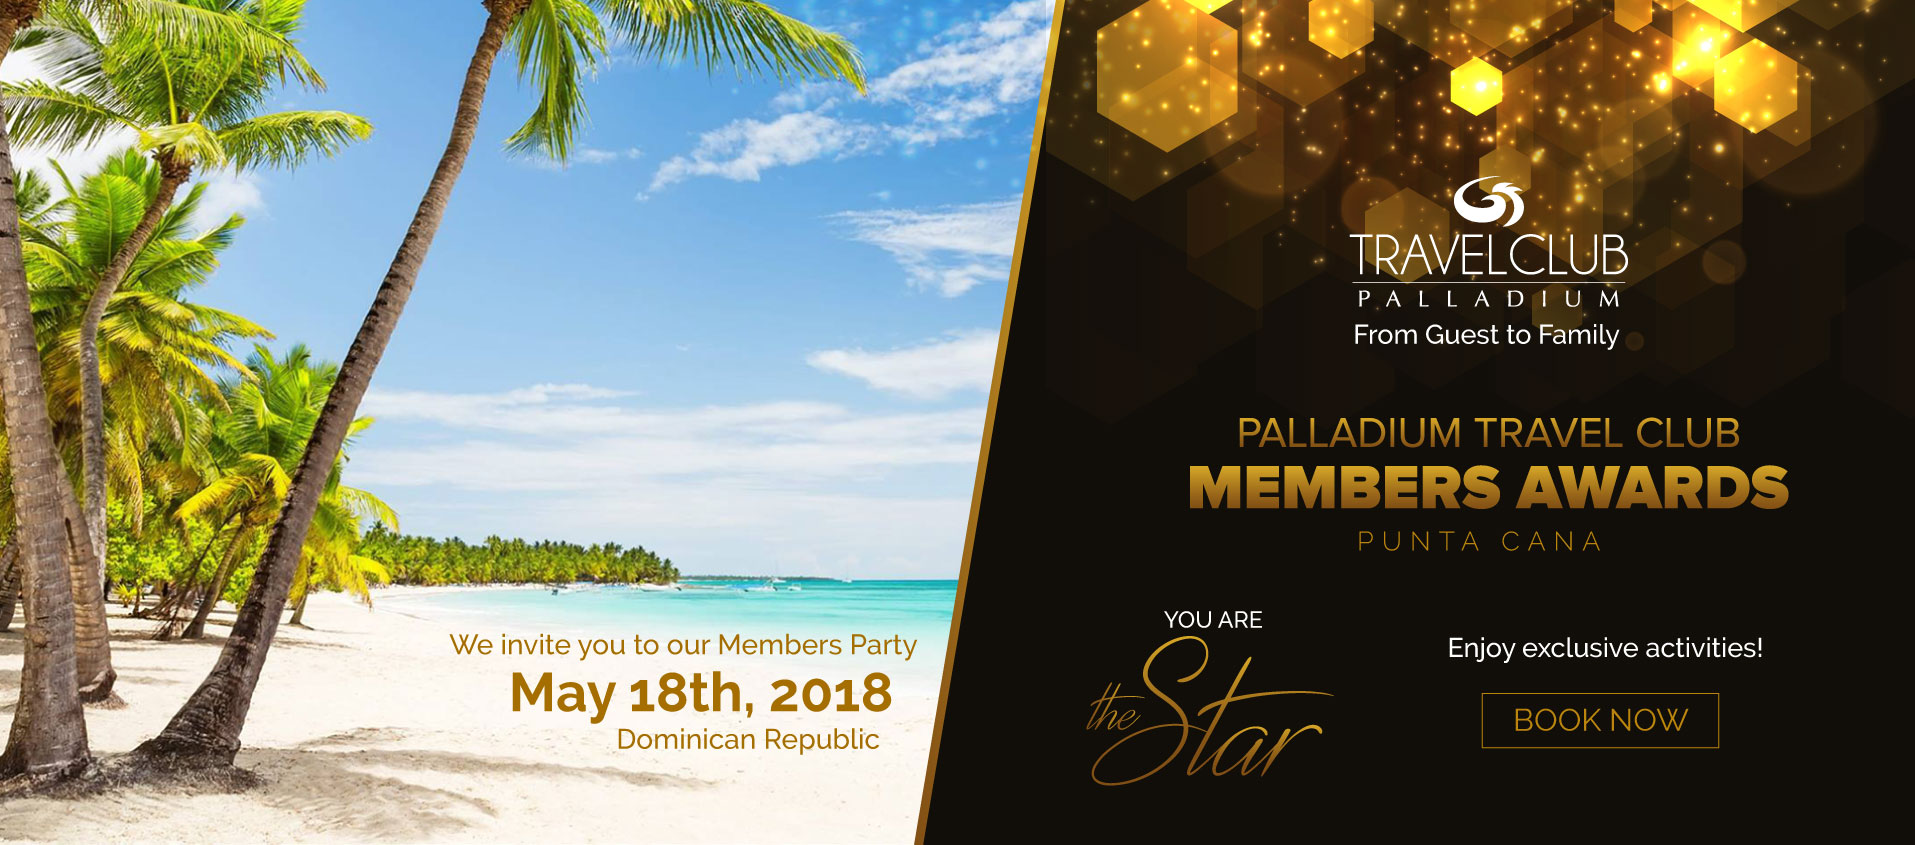 Palladium Travel Club Members Awards